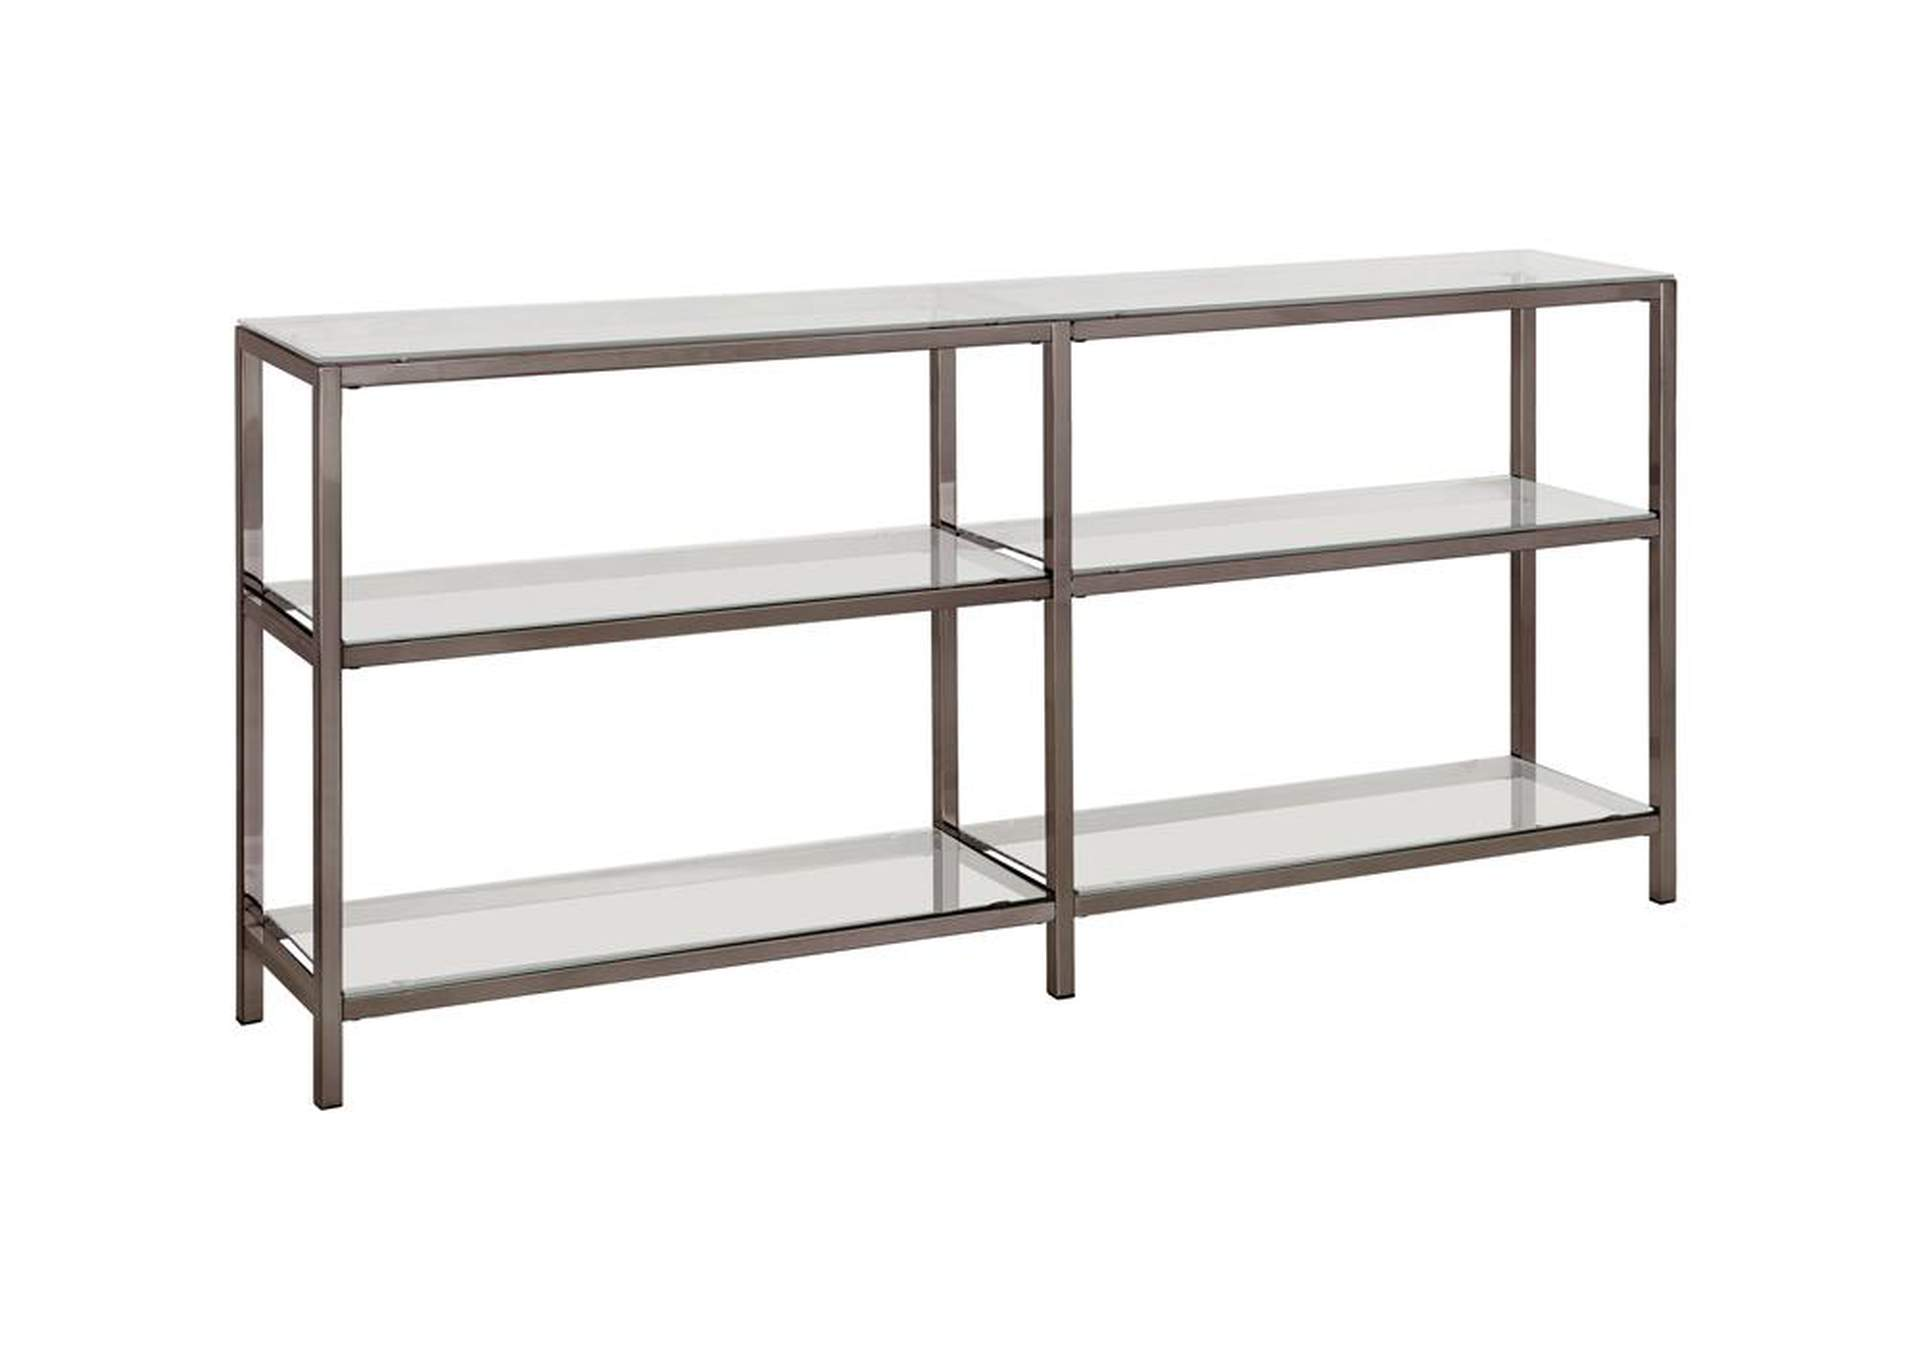 Swiss Coffee Contemporary Black Nickel Two-Tier Double Bookcase,Coaster Furniture